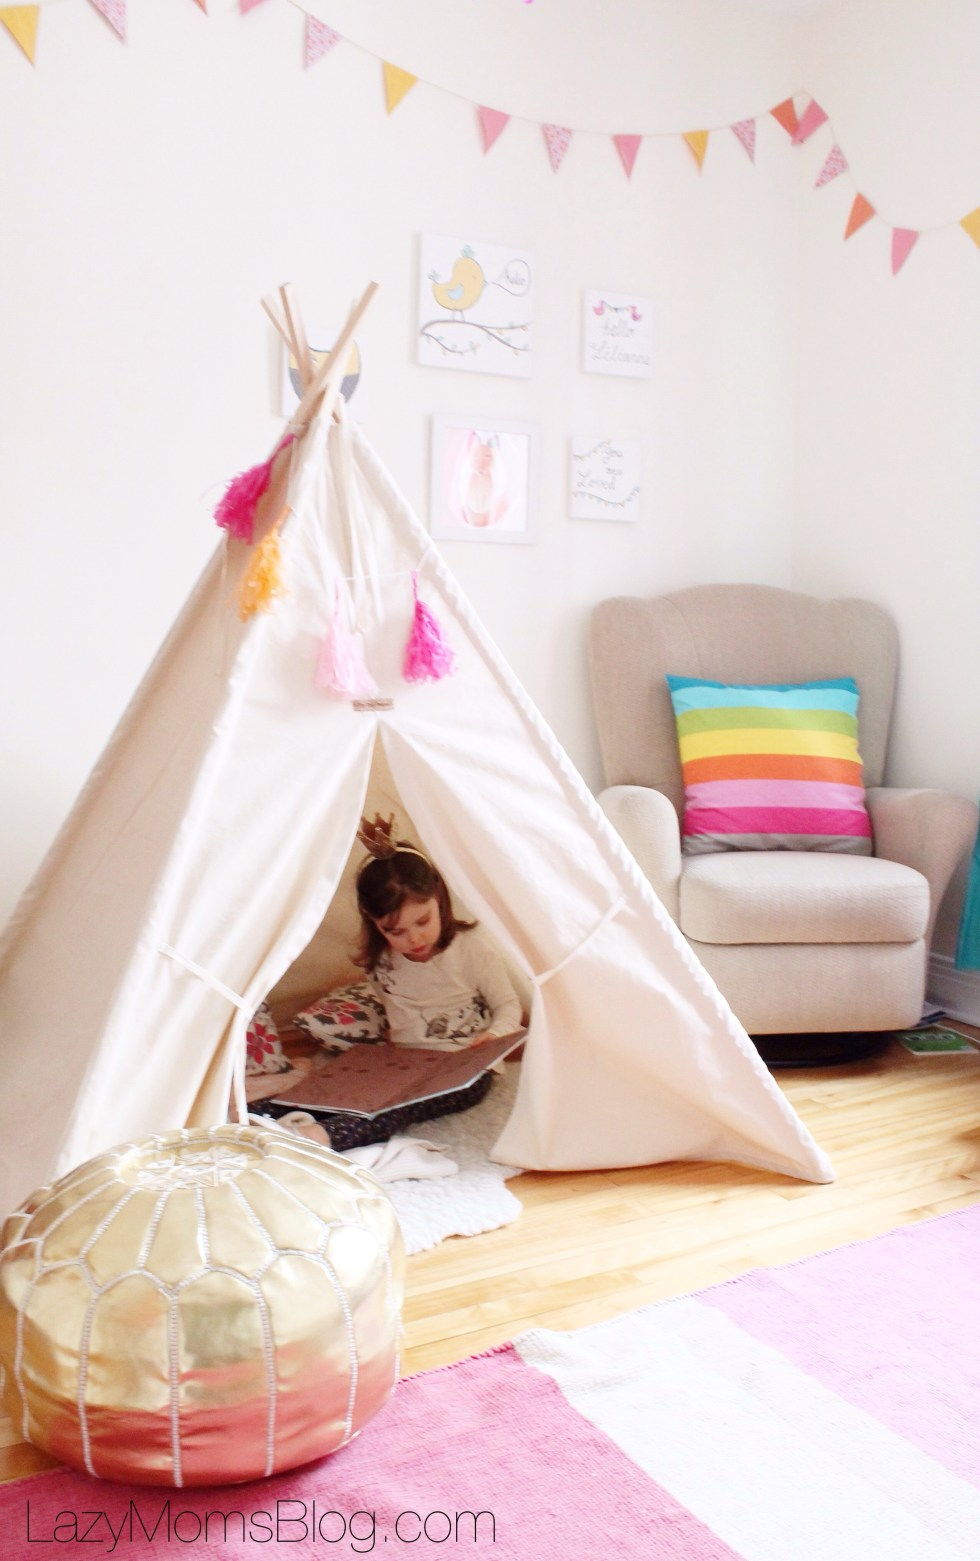 Why imaginative play is so important and how to encourage it